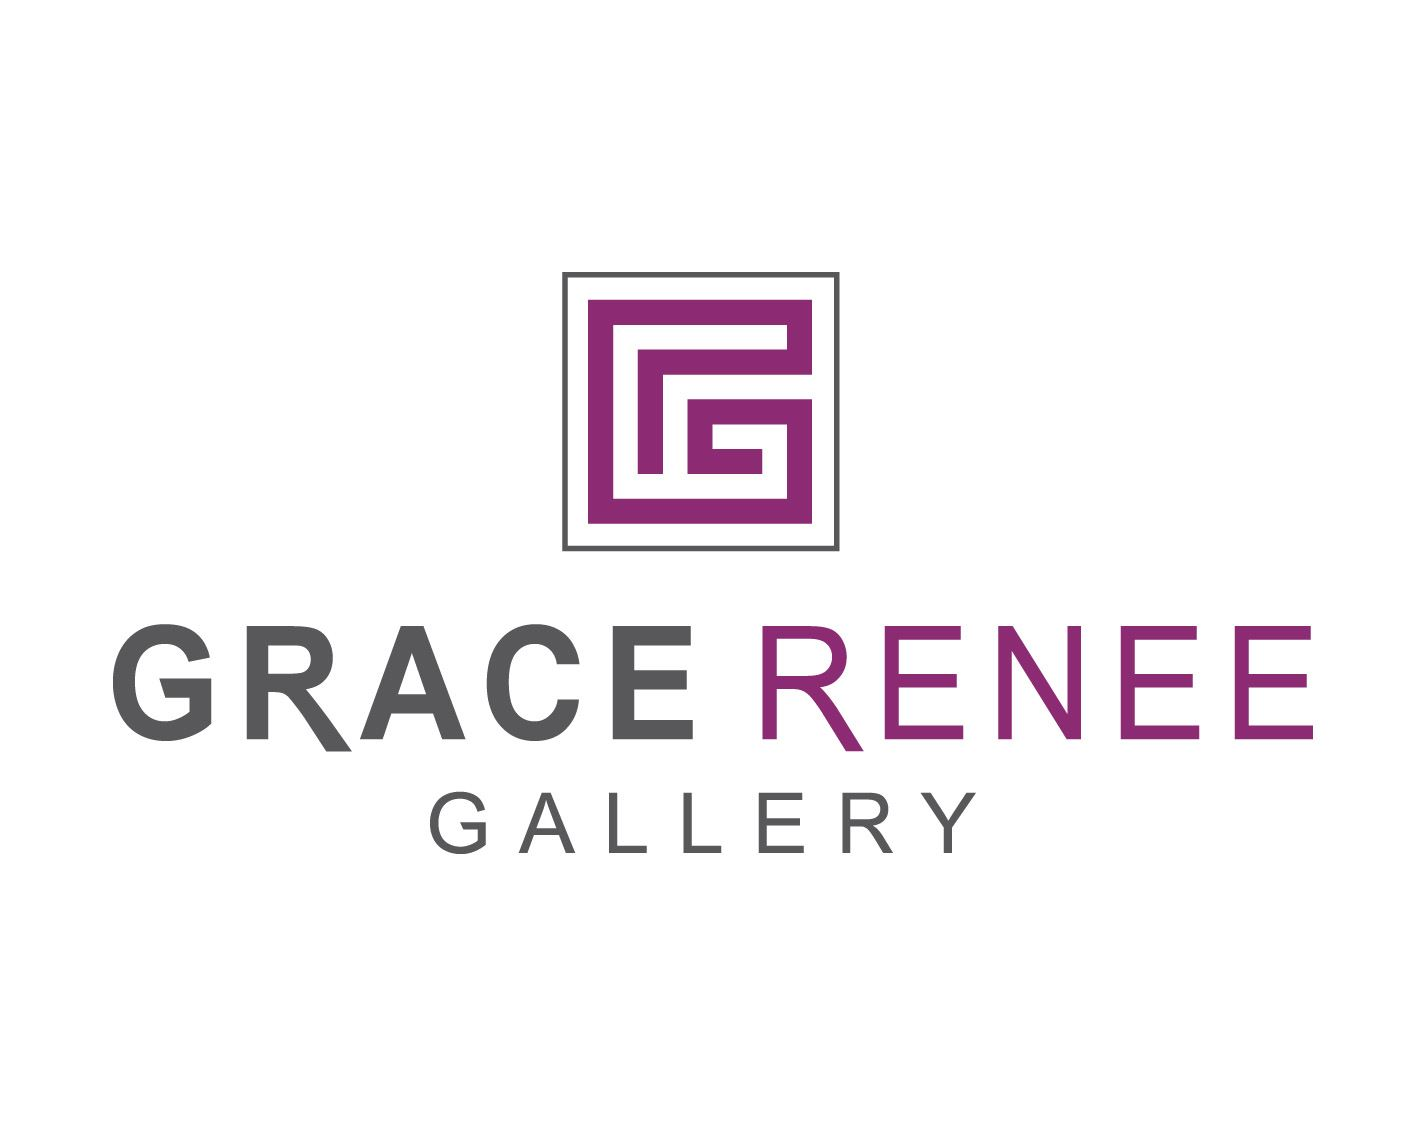 grace renee gallery